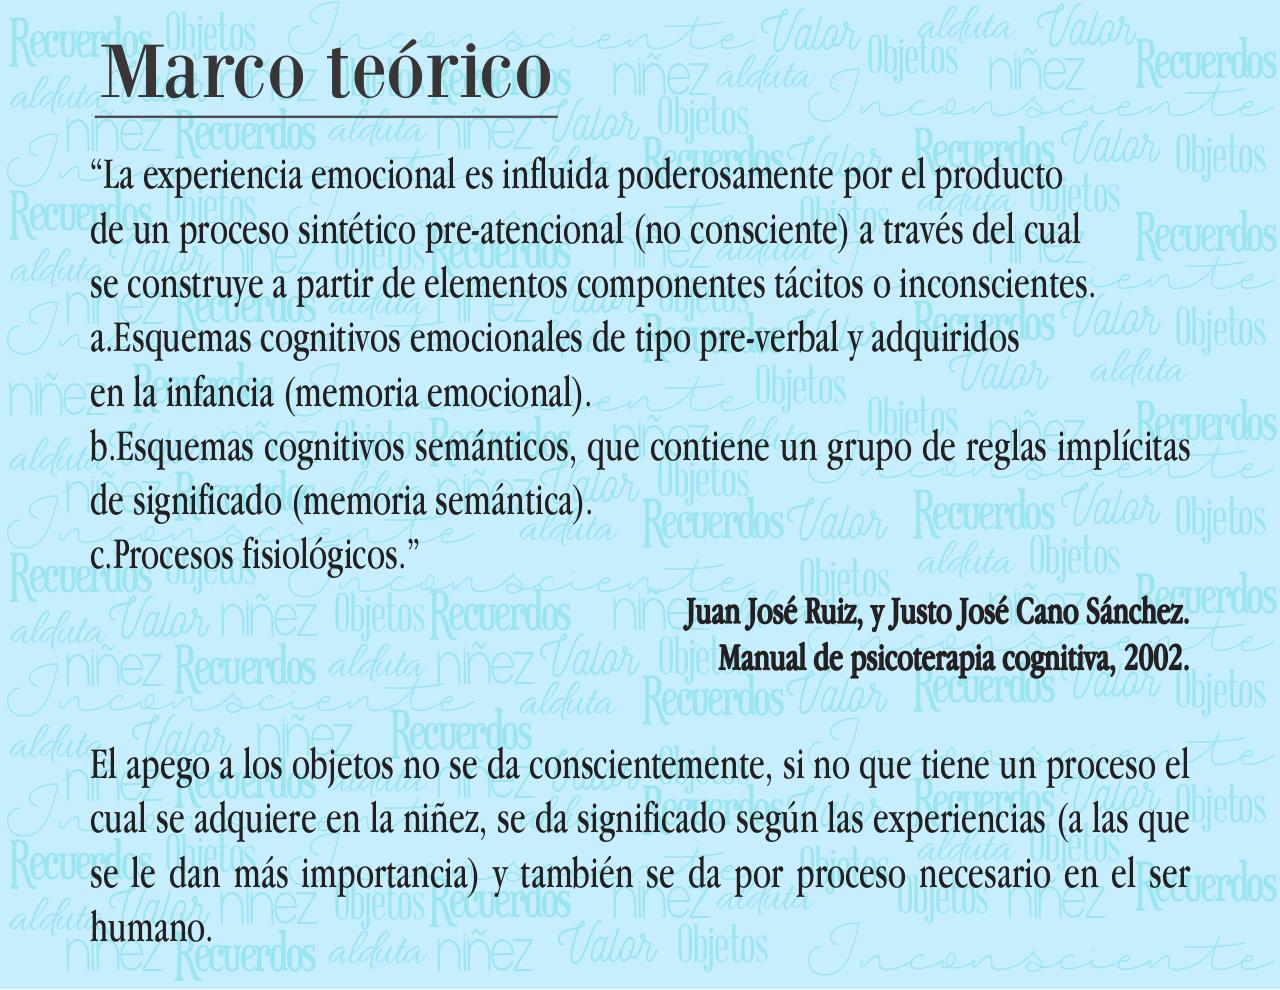 parcial marco teorico2.pdf - page 4/6